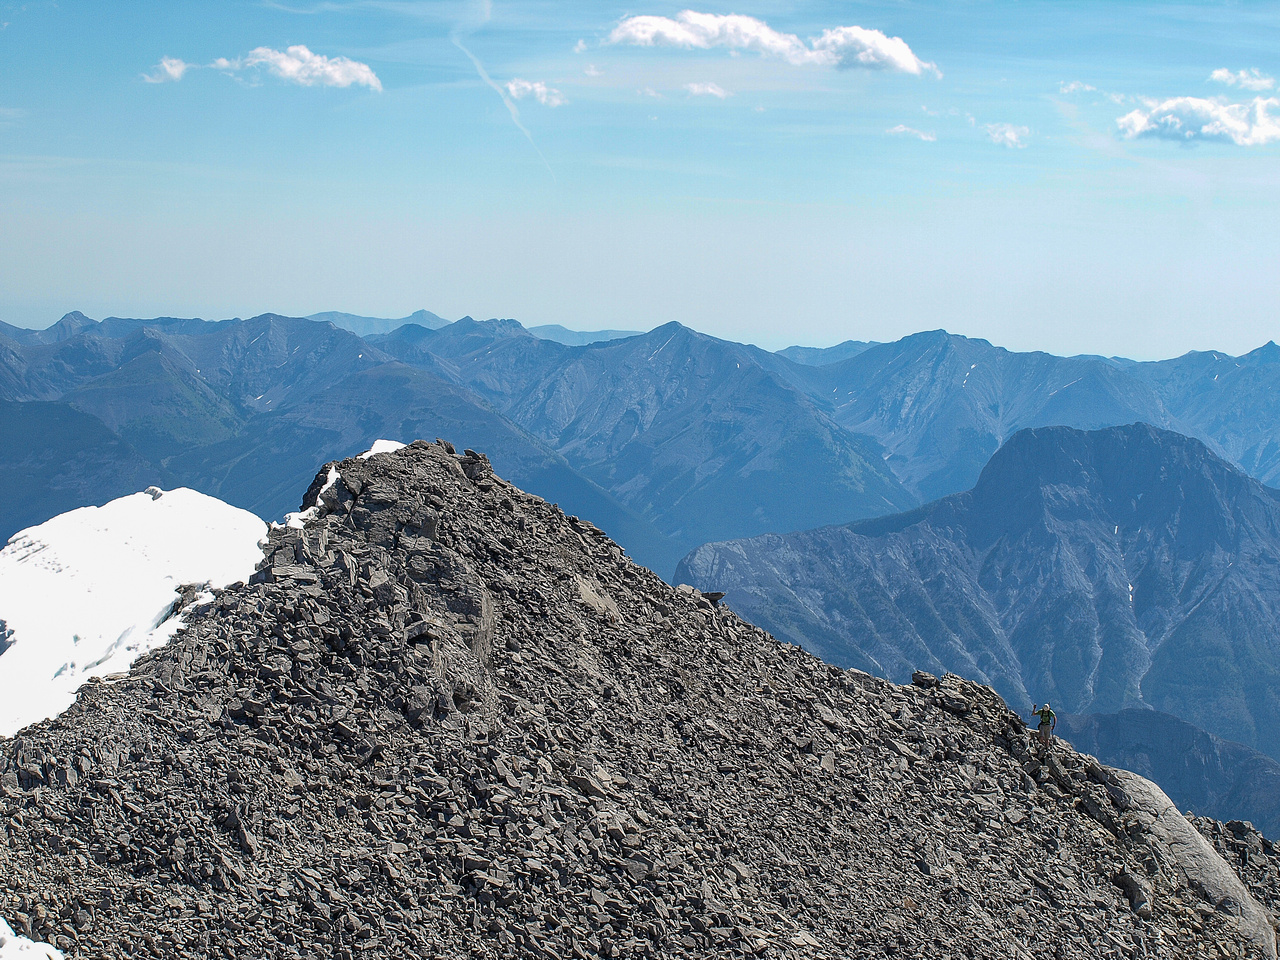 A wider shot of JW on the summit ridge.